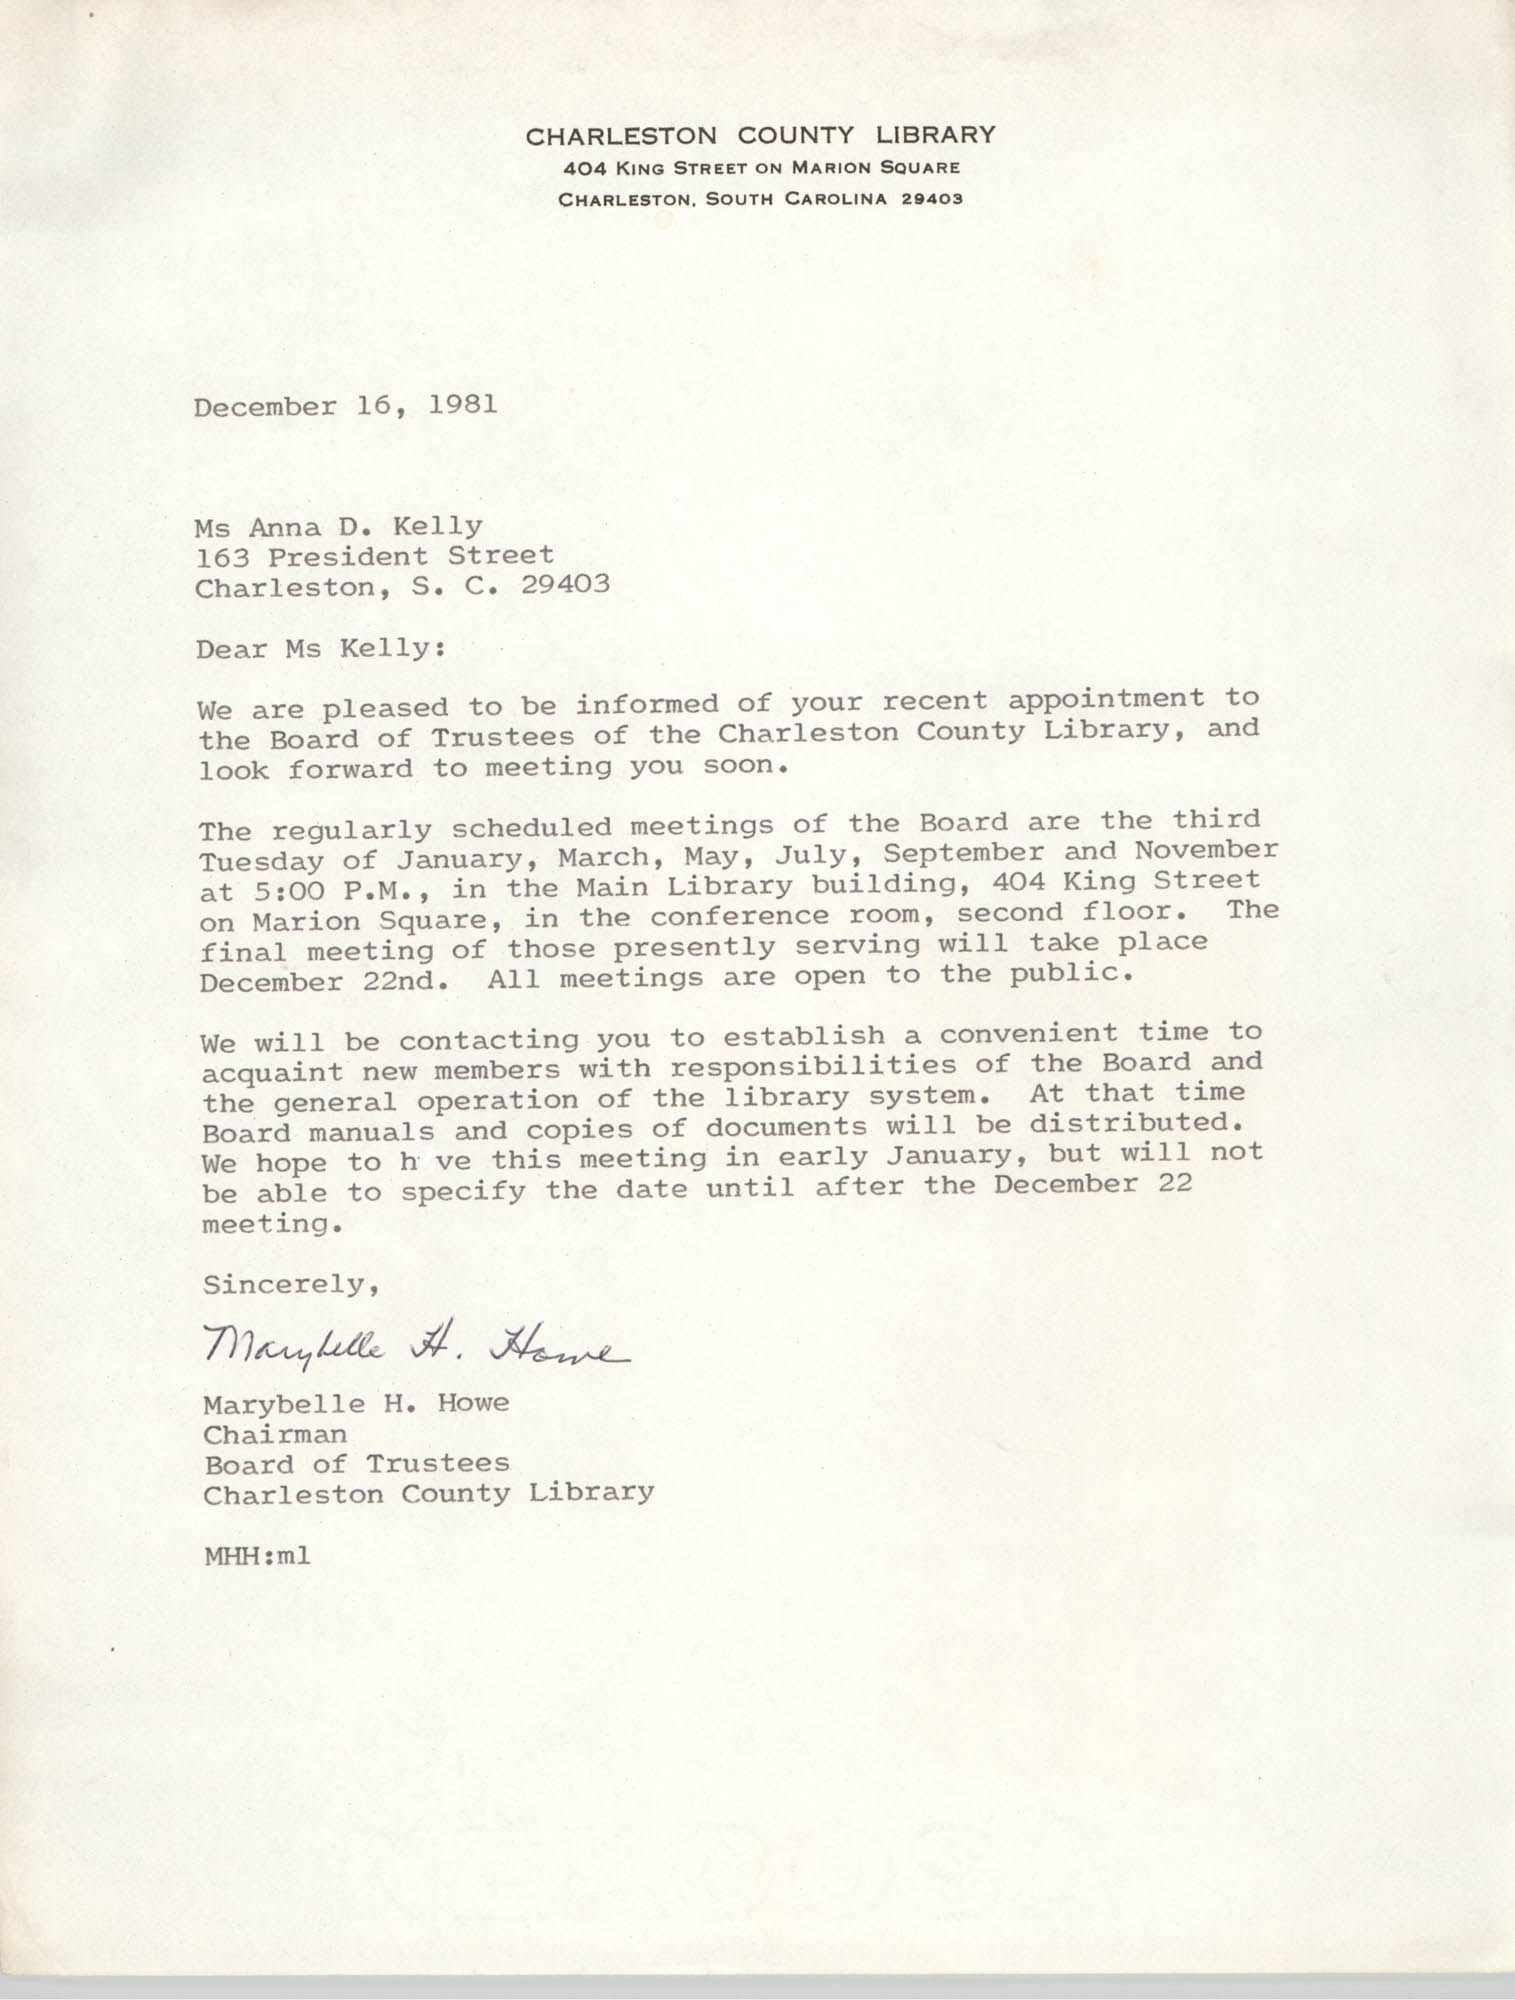 Letter from Marybelle H. Howe to Anna D. Kelly, December 16, 1981